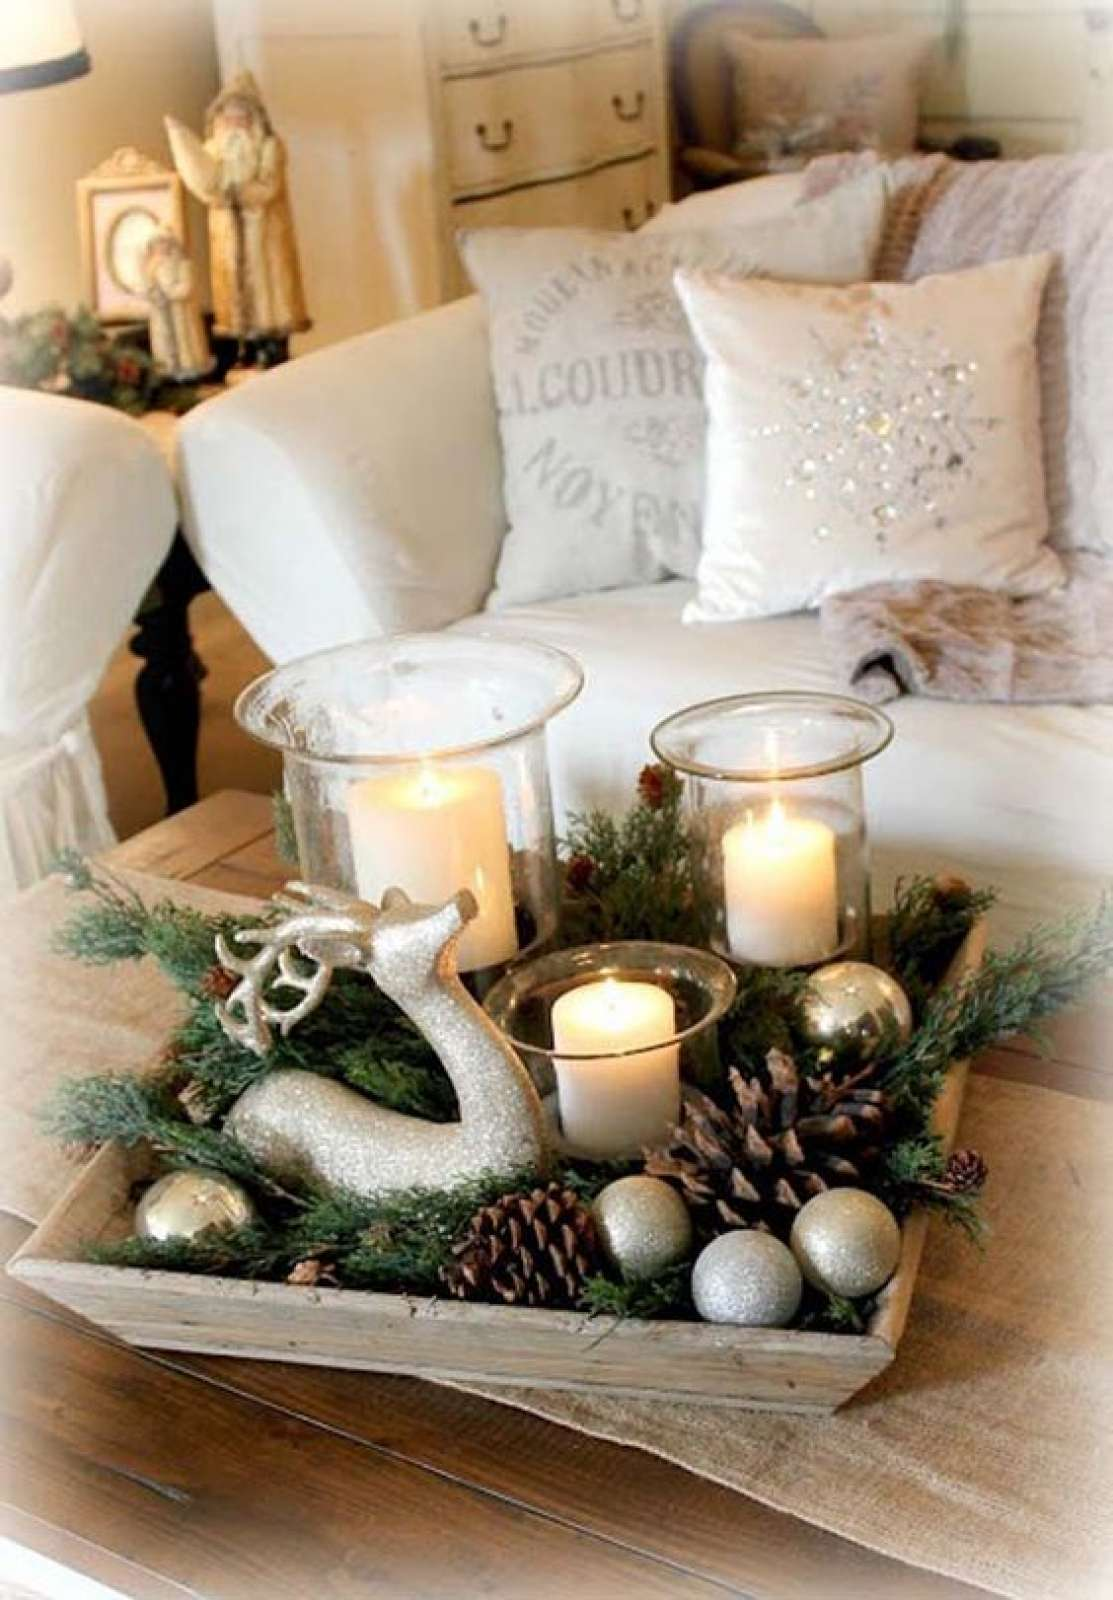 Reindeer Coffee Table Centerpiece